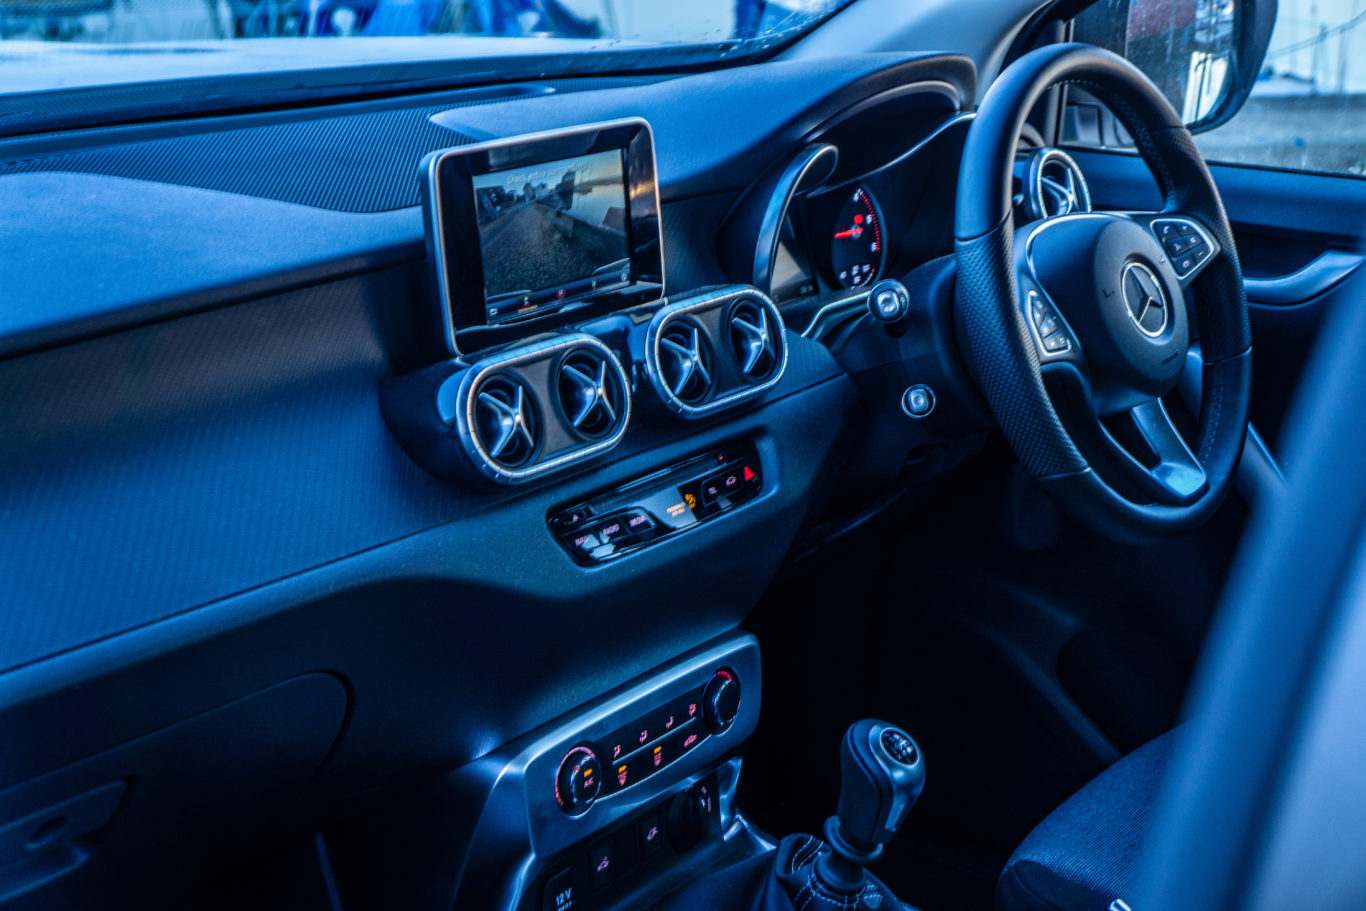 The cabin of the X-Class is more upmarket than rival offerings